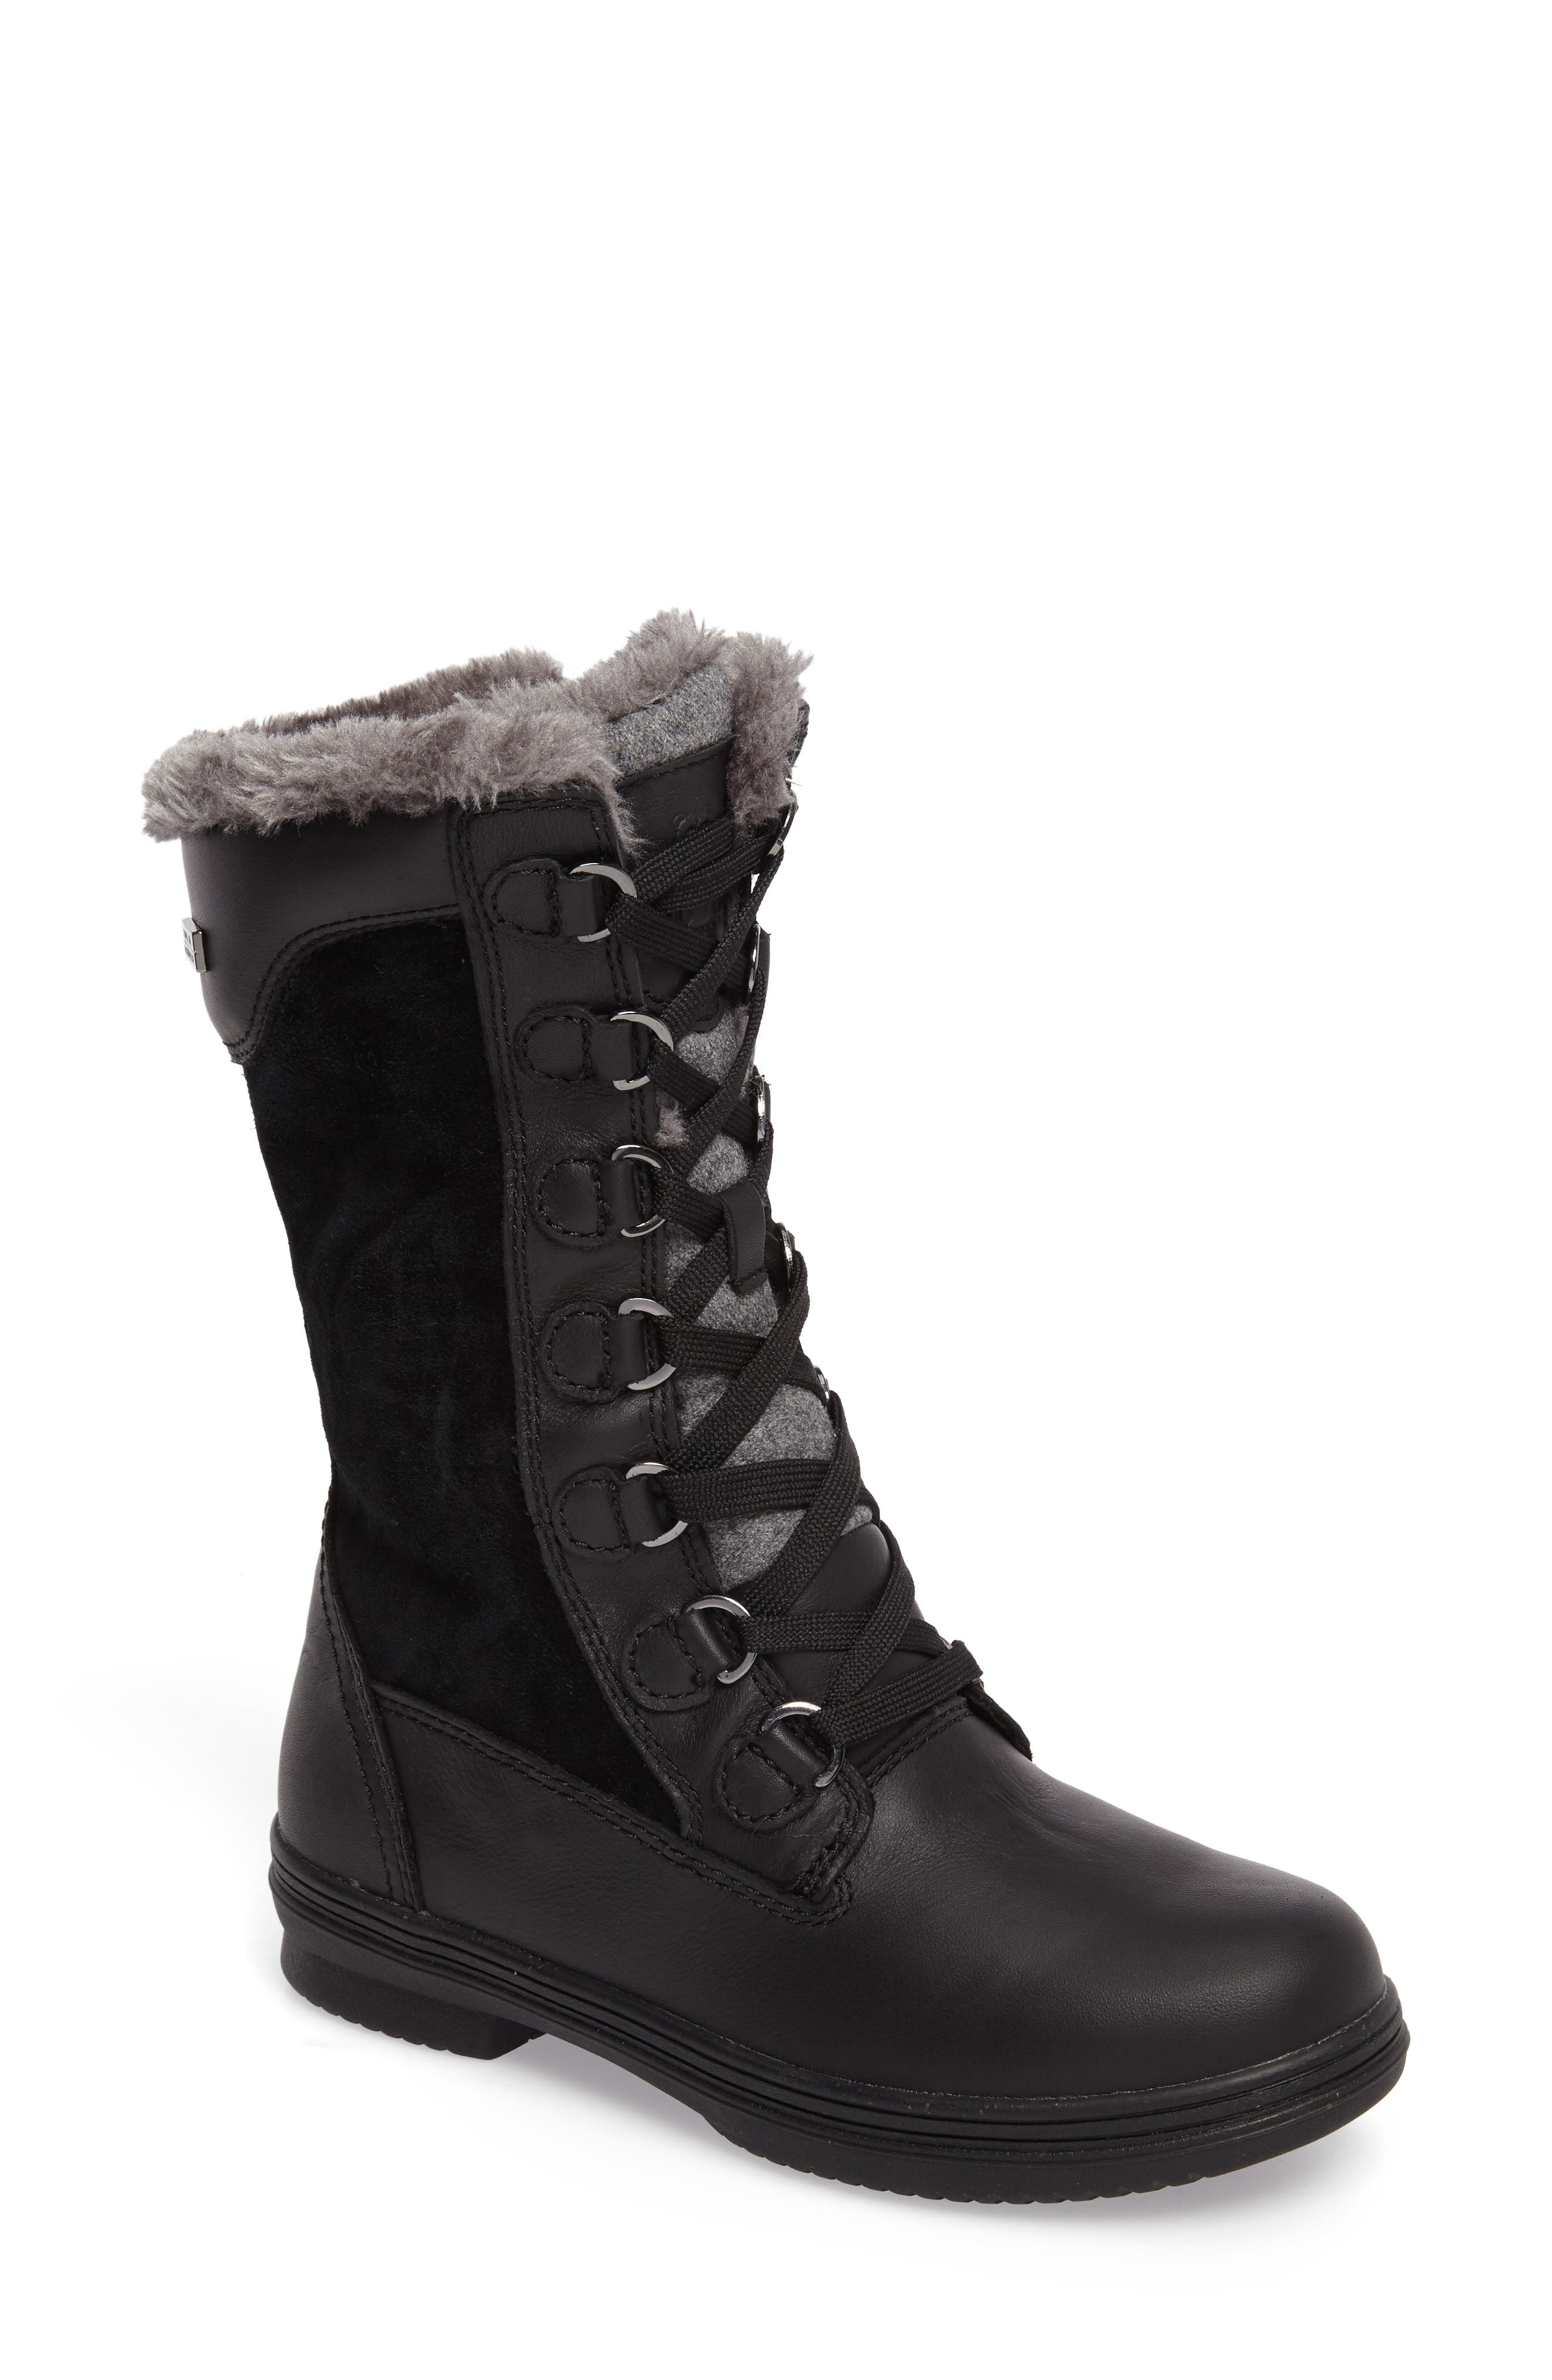 Main Image - Kodiak Glata Waterproof Boot (Women)